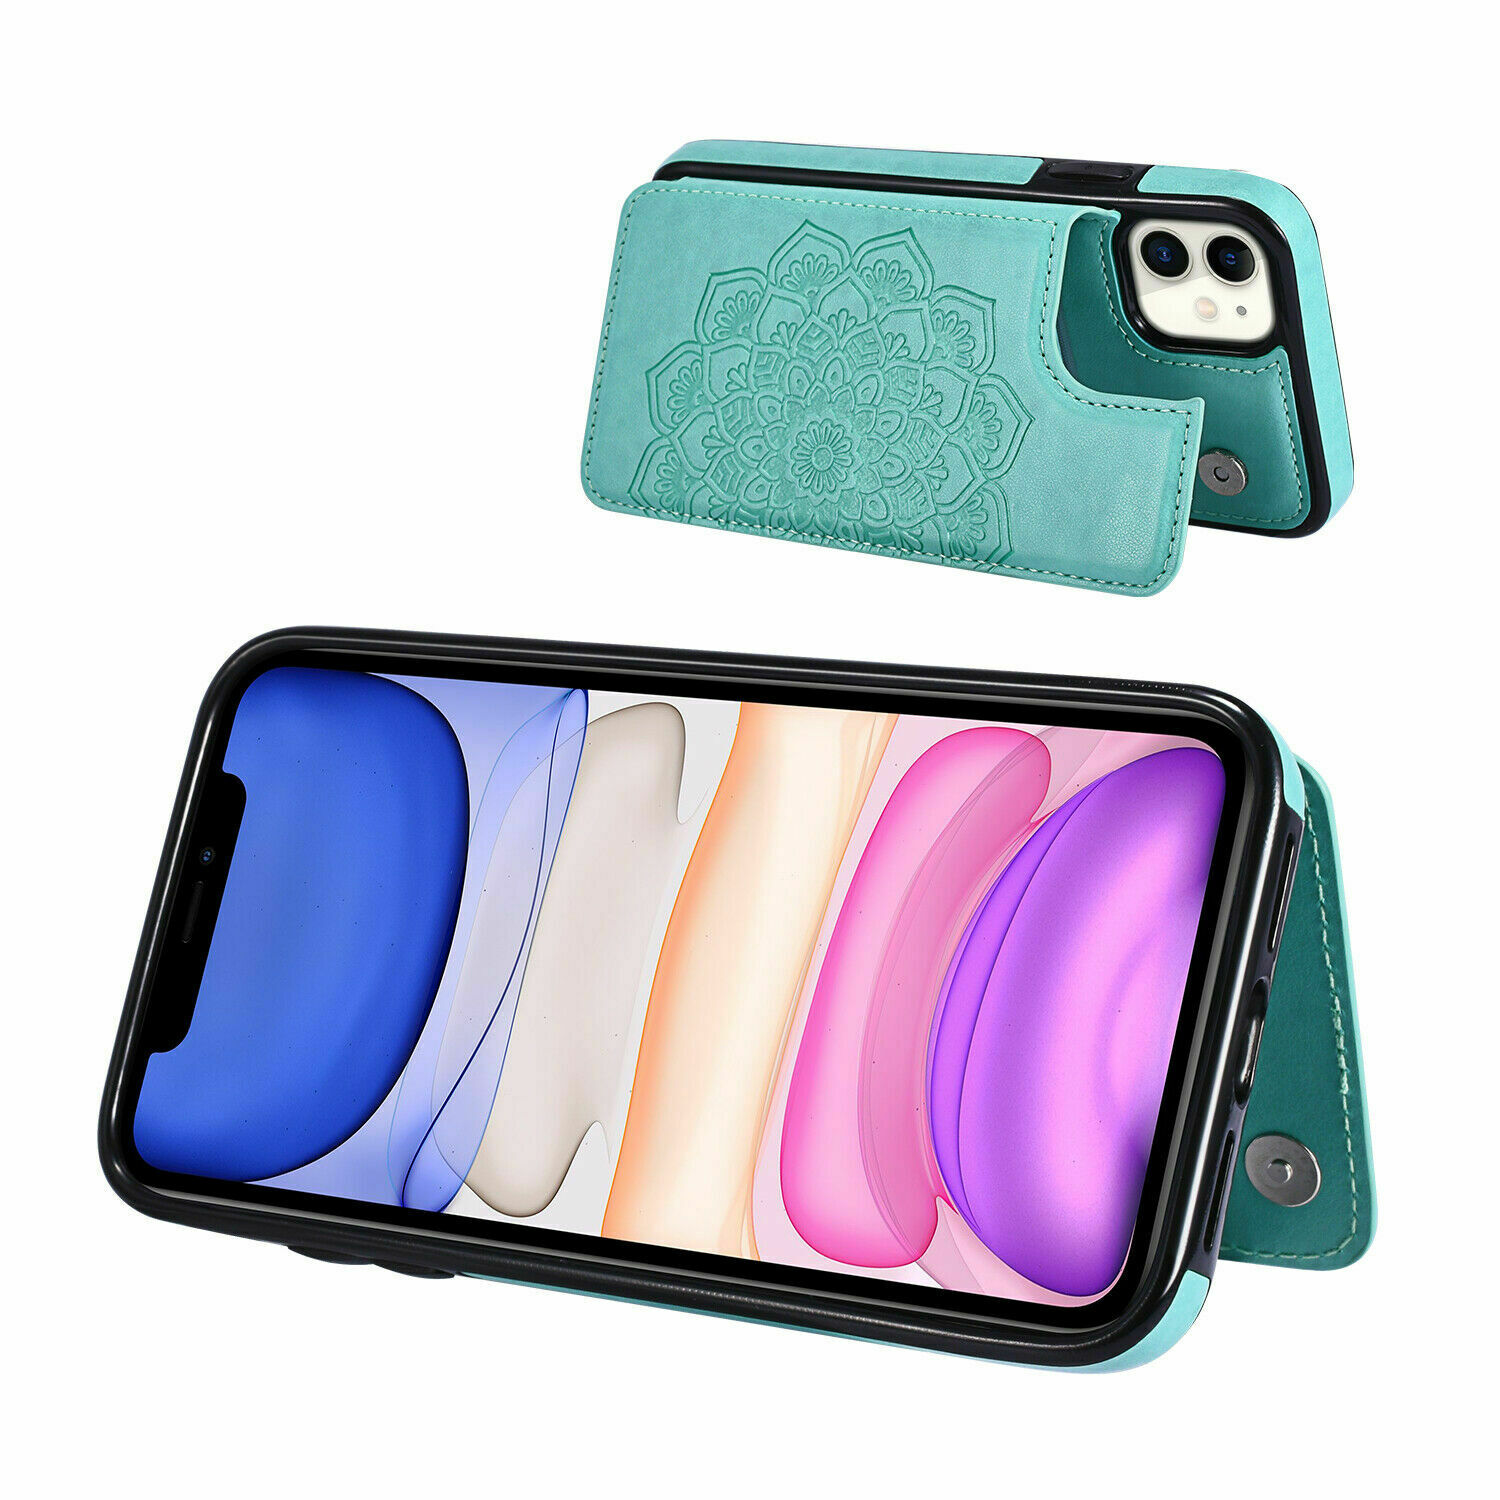 thumbnail 12 - Leather Flip Wallet Card Holder Case Cover For Samsung Galaxy S20 S10 S9 A21s 51